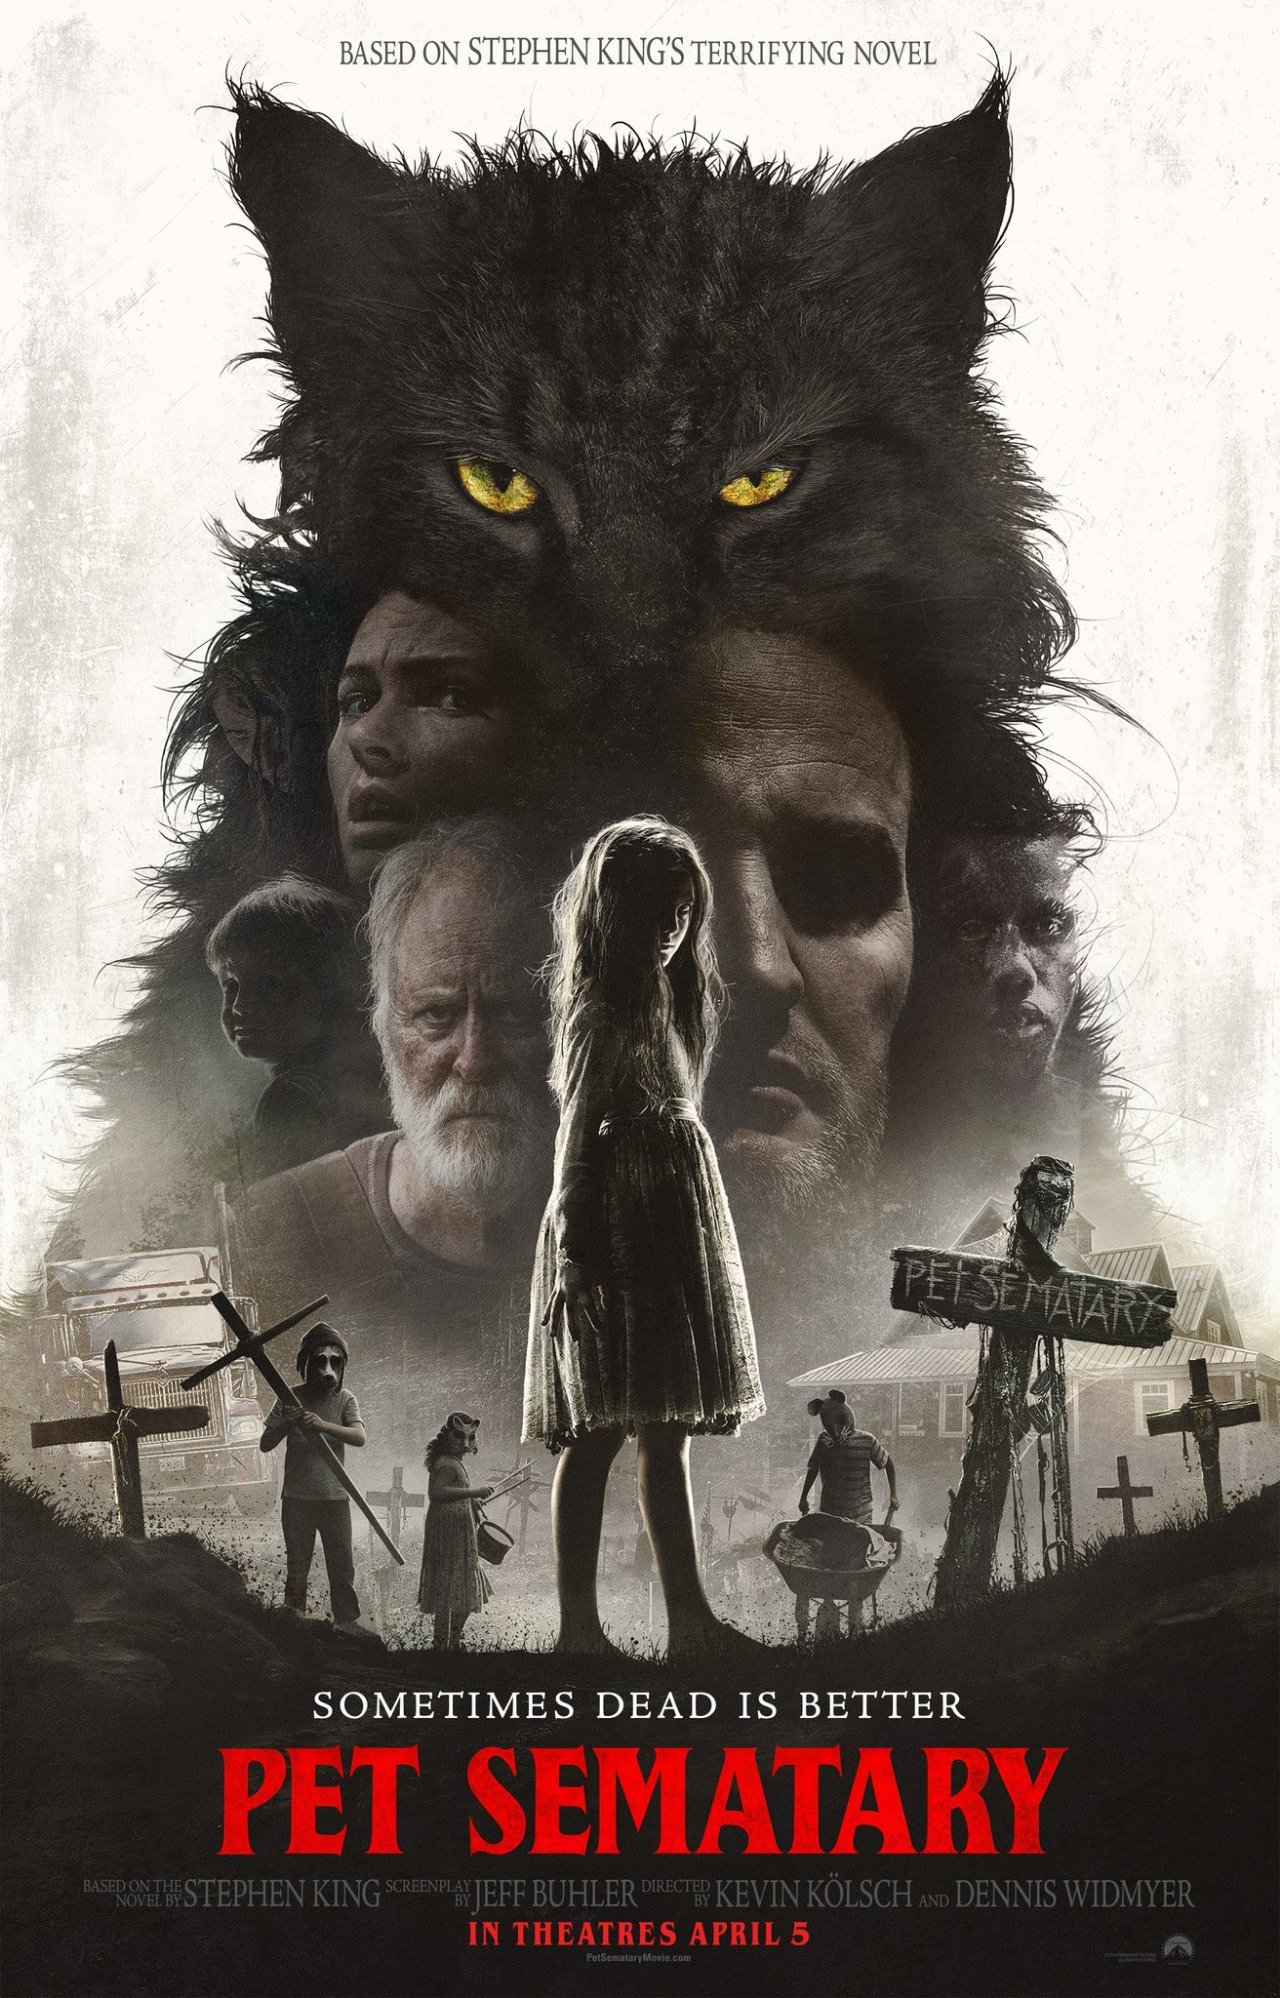 Concession Stand Mini Episode: Pet Sematary (2019) Opening Night